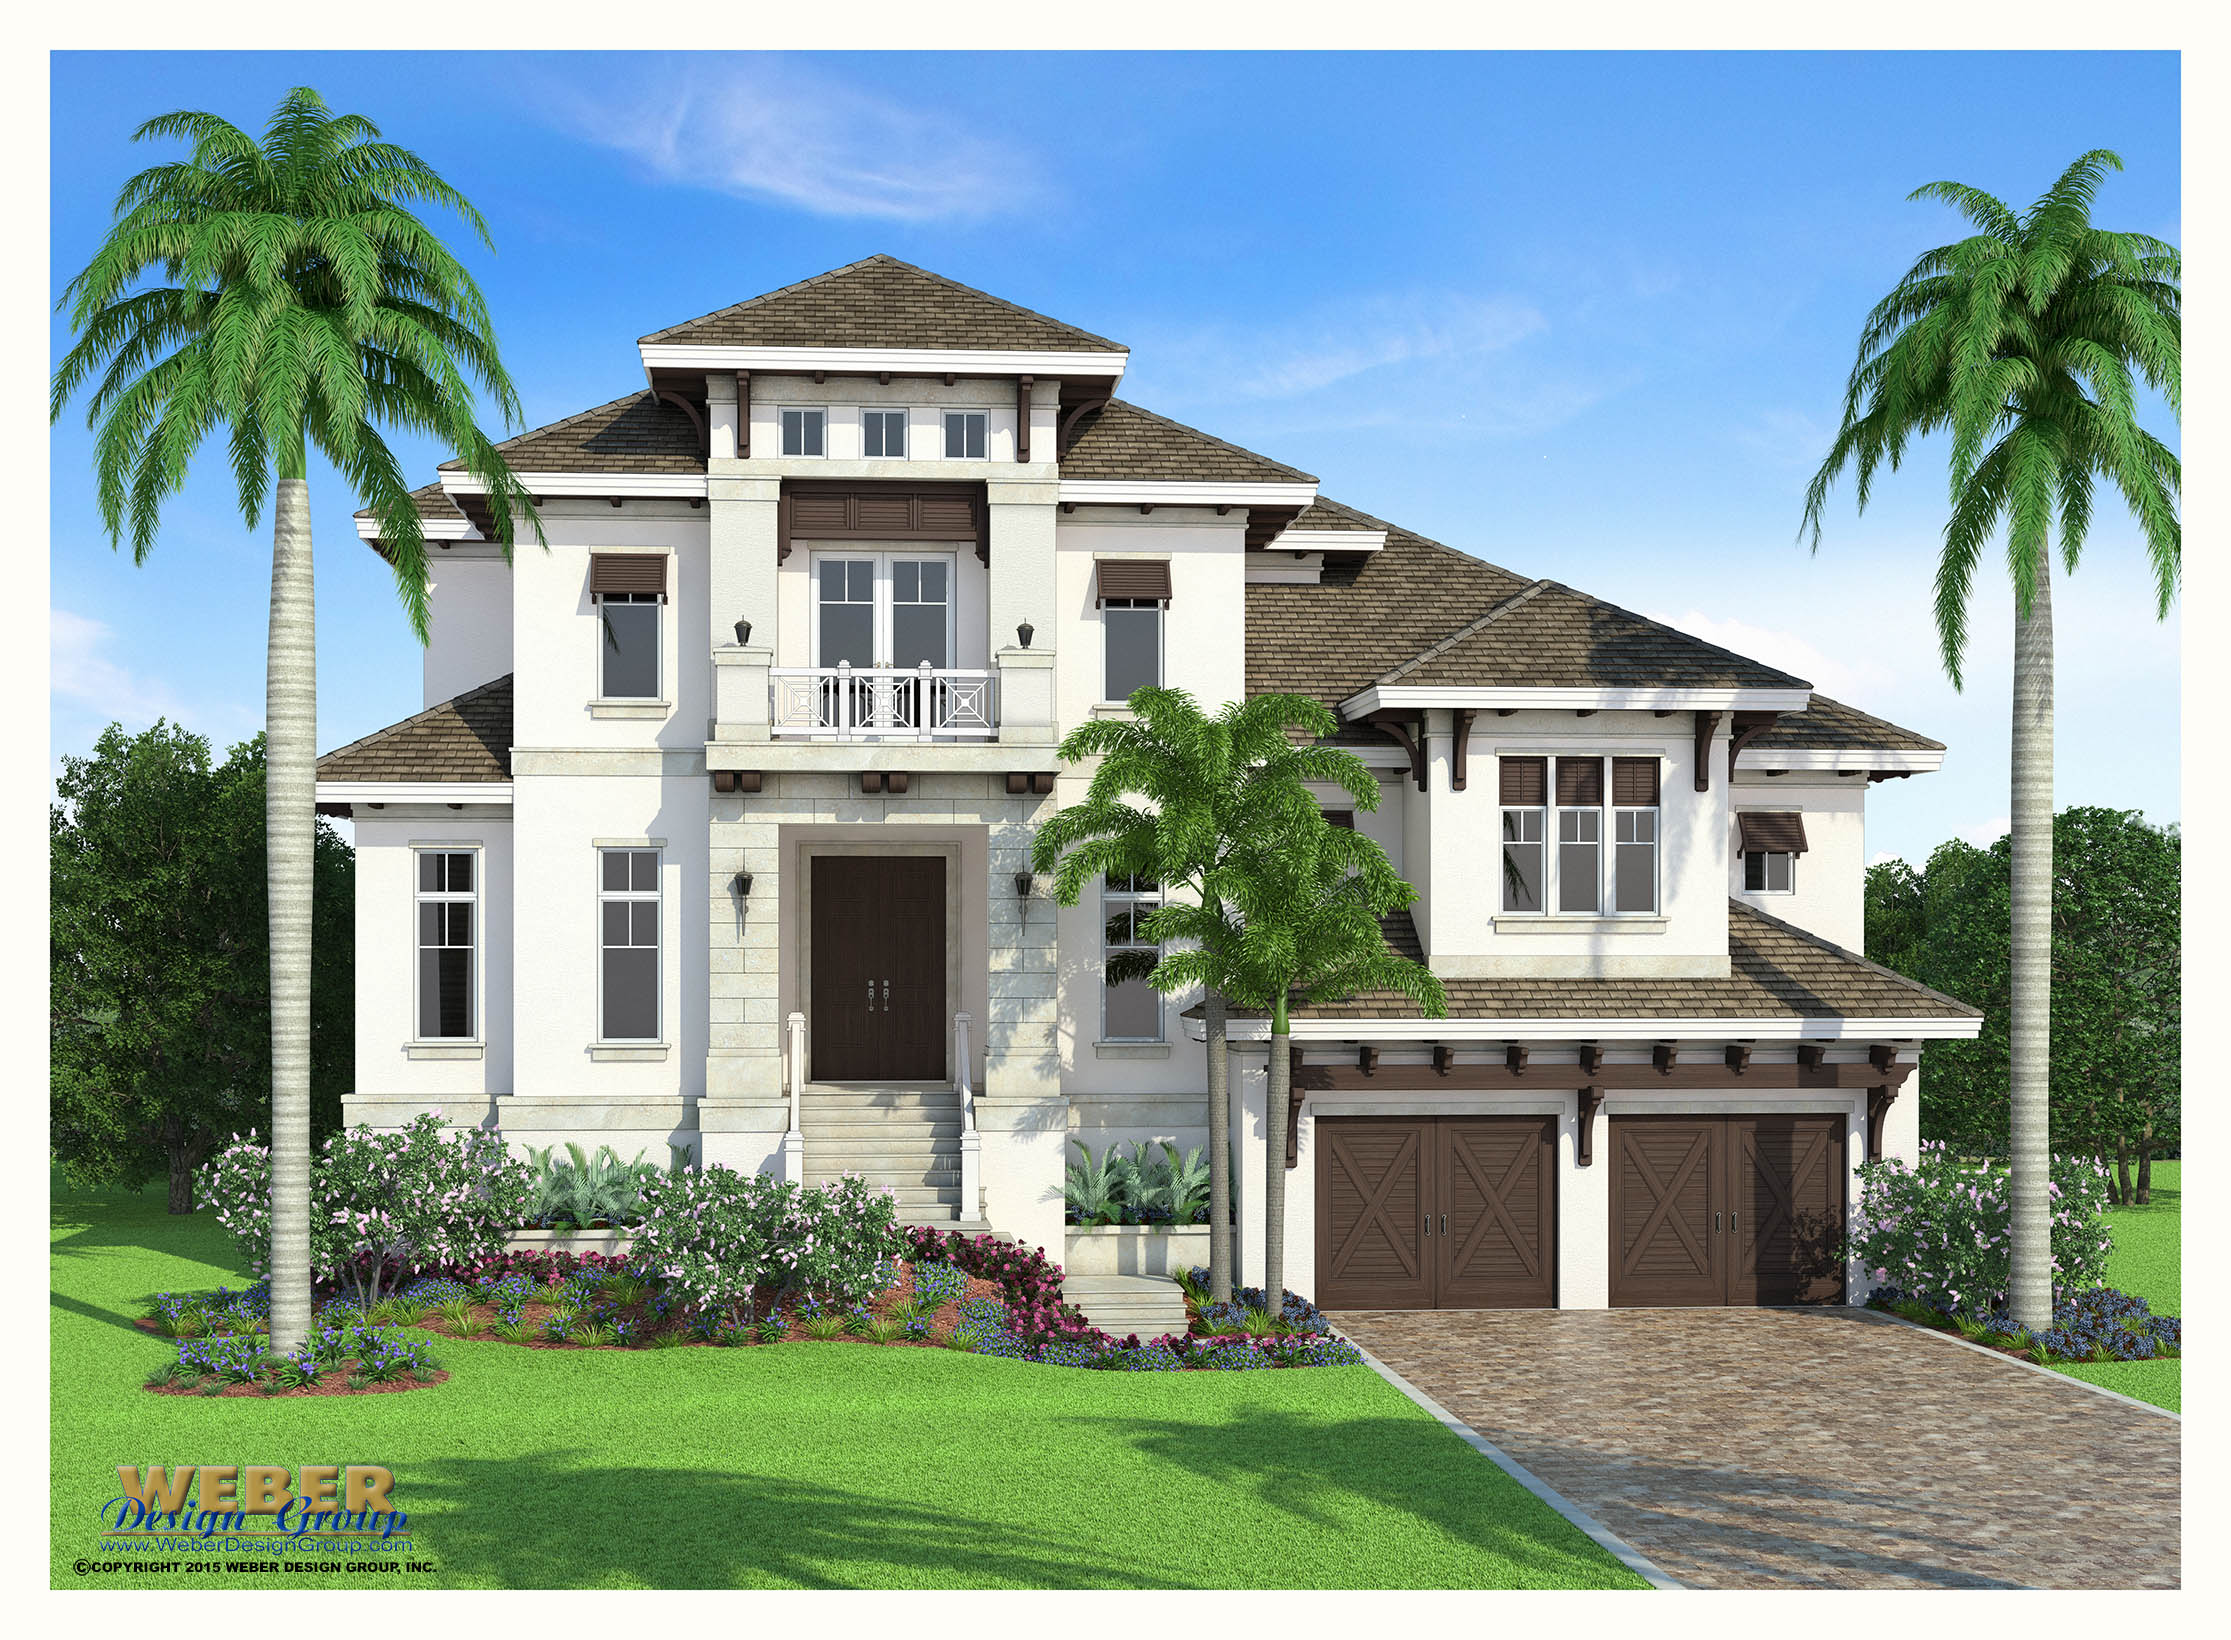 West indies architecture san souci home plan weber design group - Design homes wi ...